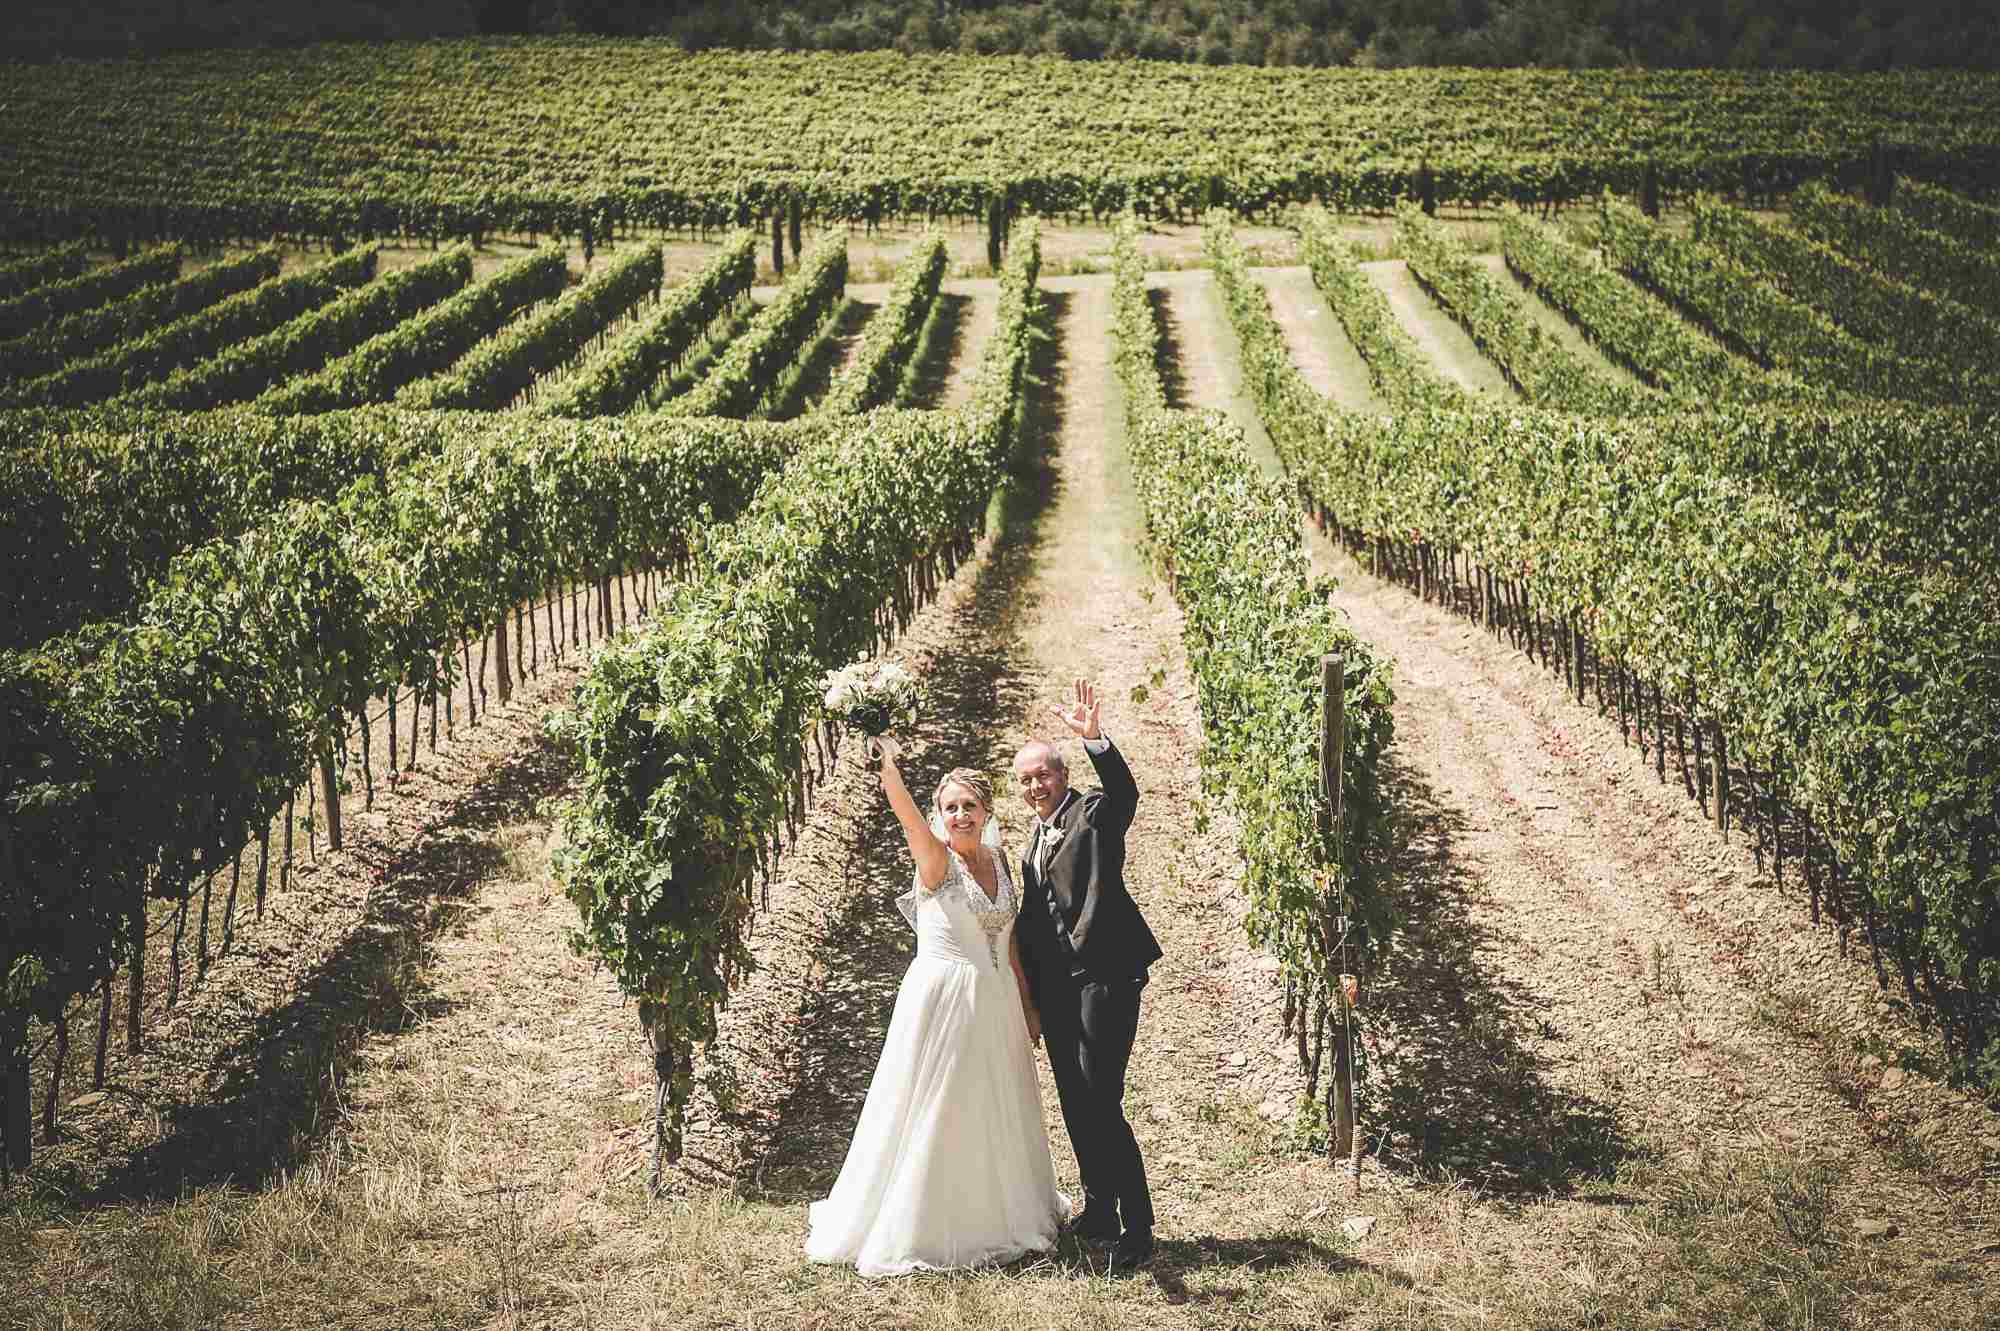 italian vineyard wedding - wedding in a vineyard italy- wedding planner